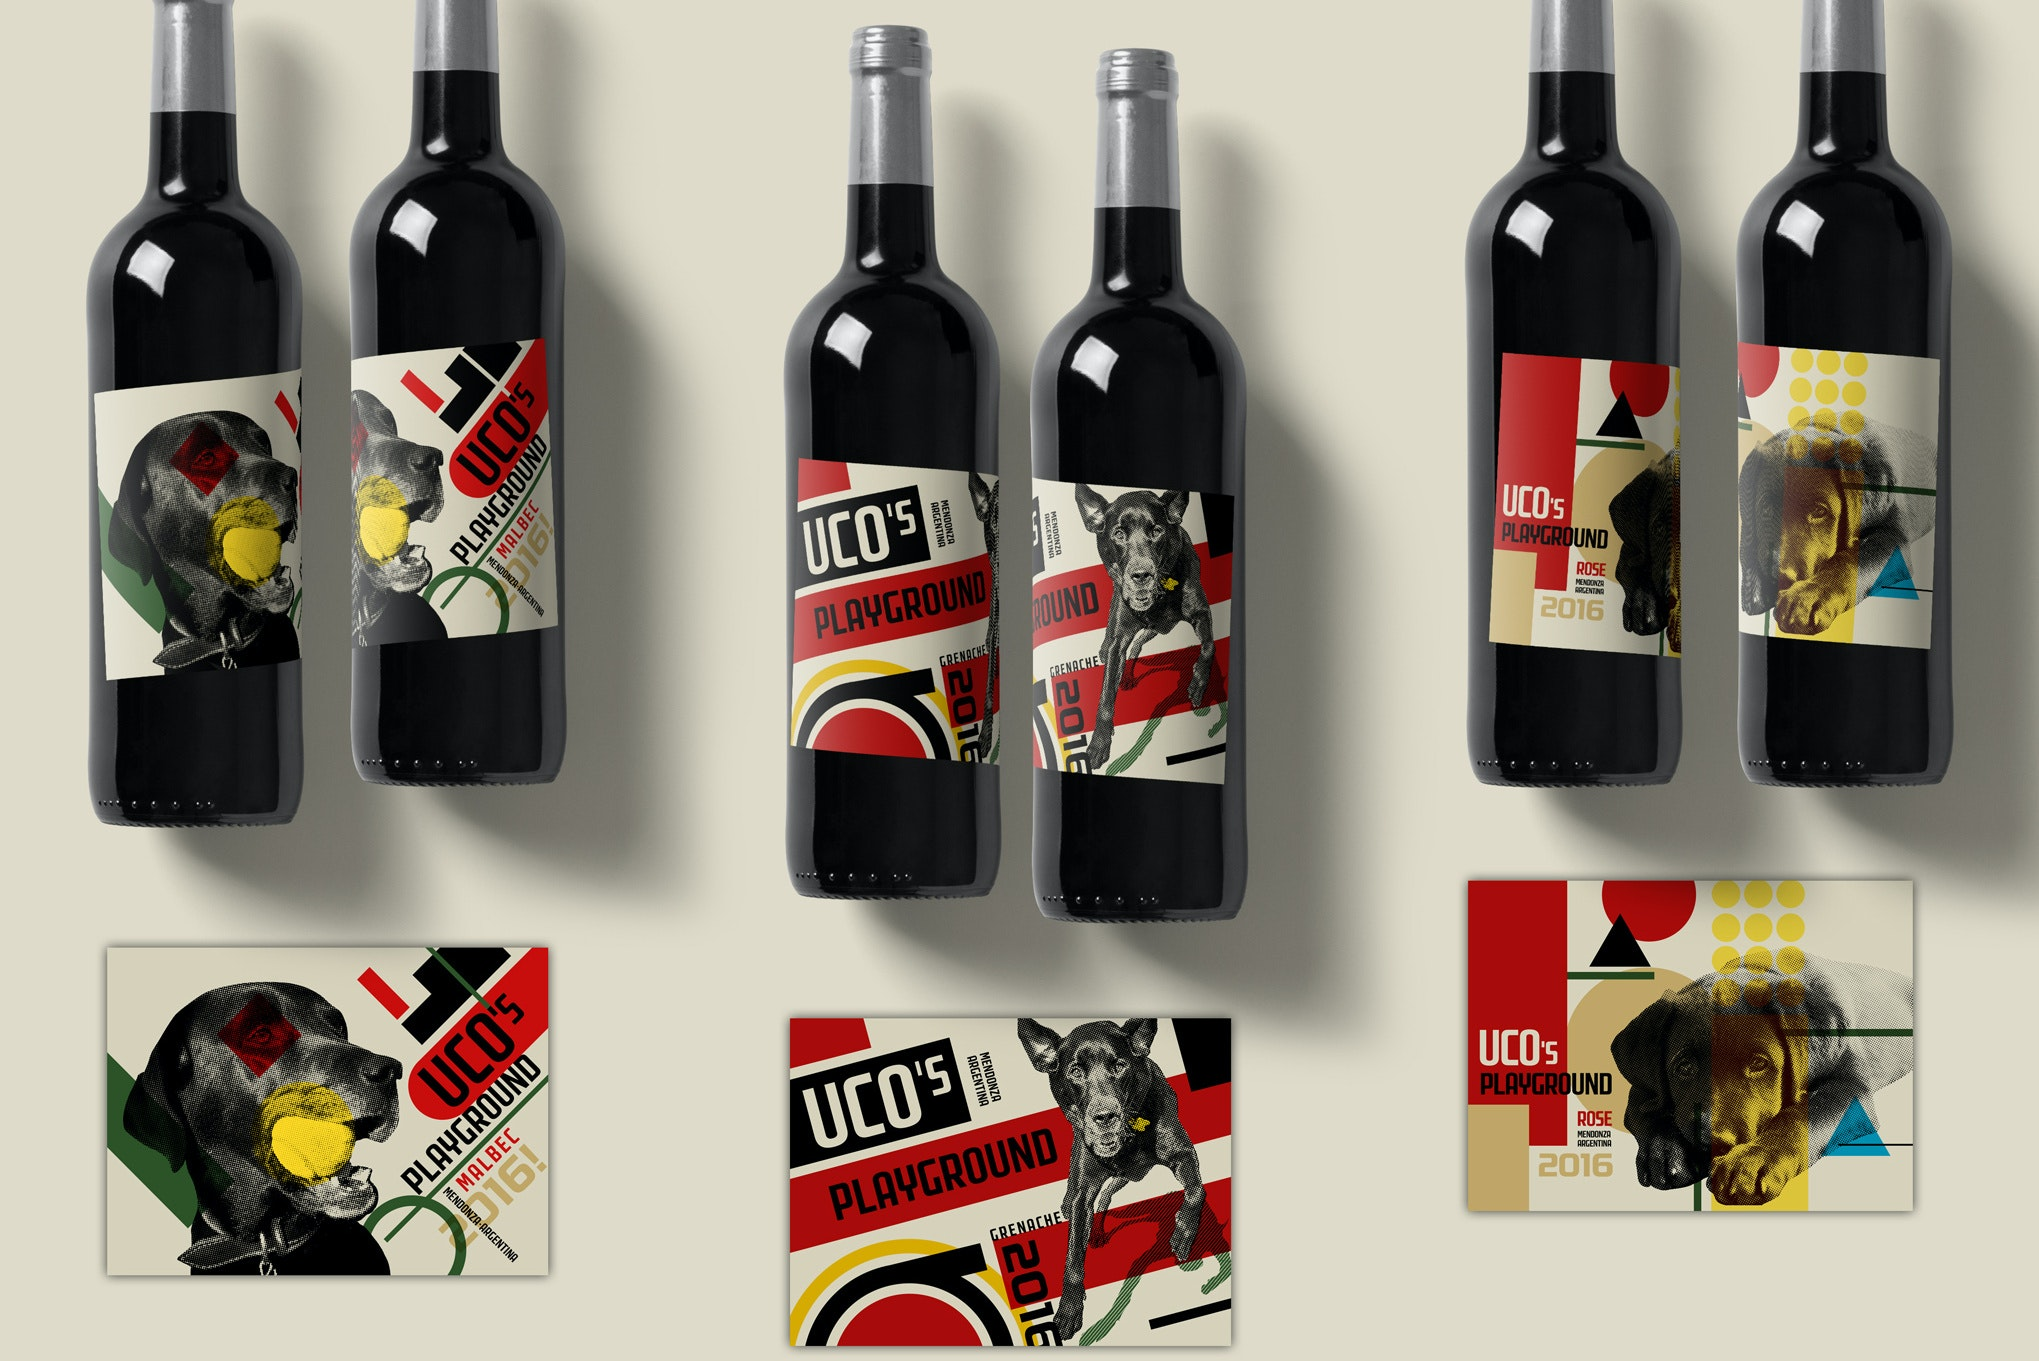 Product packaging with Bauhaus design for Uco's Playground Wine